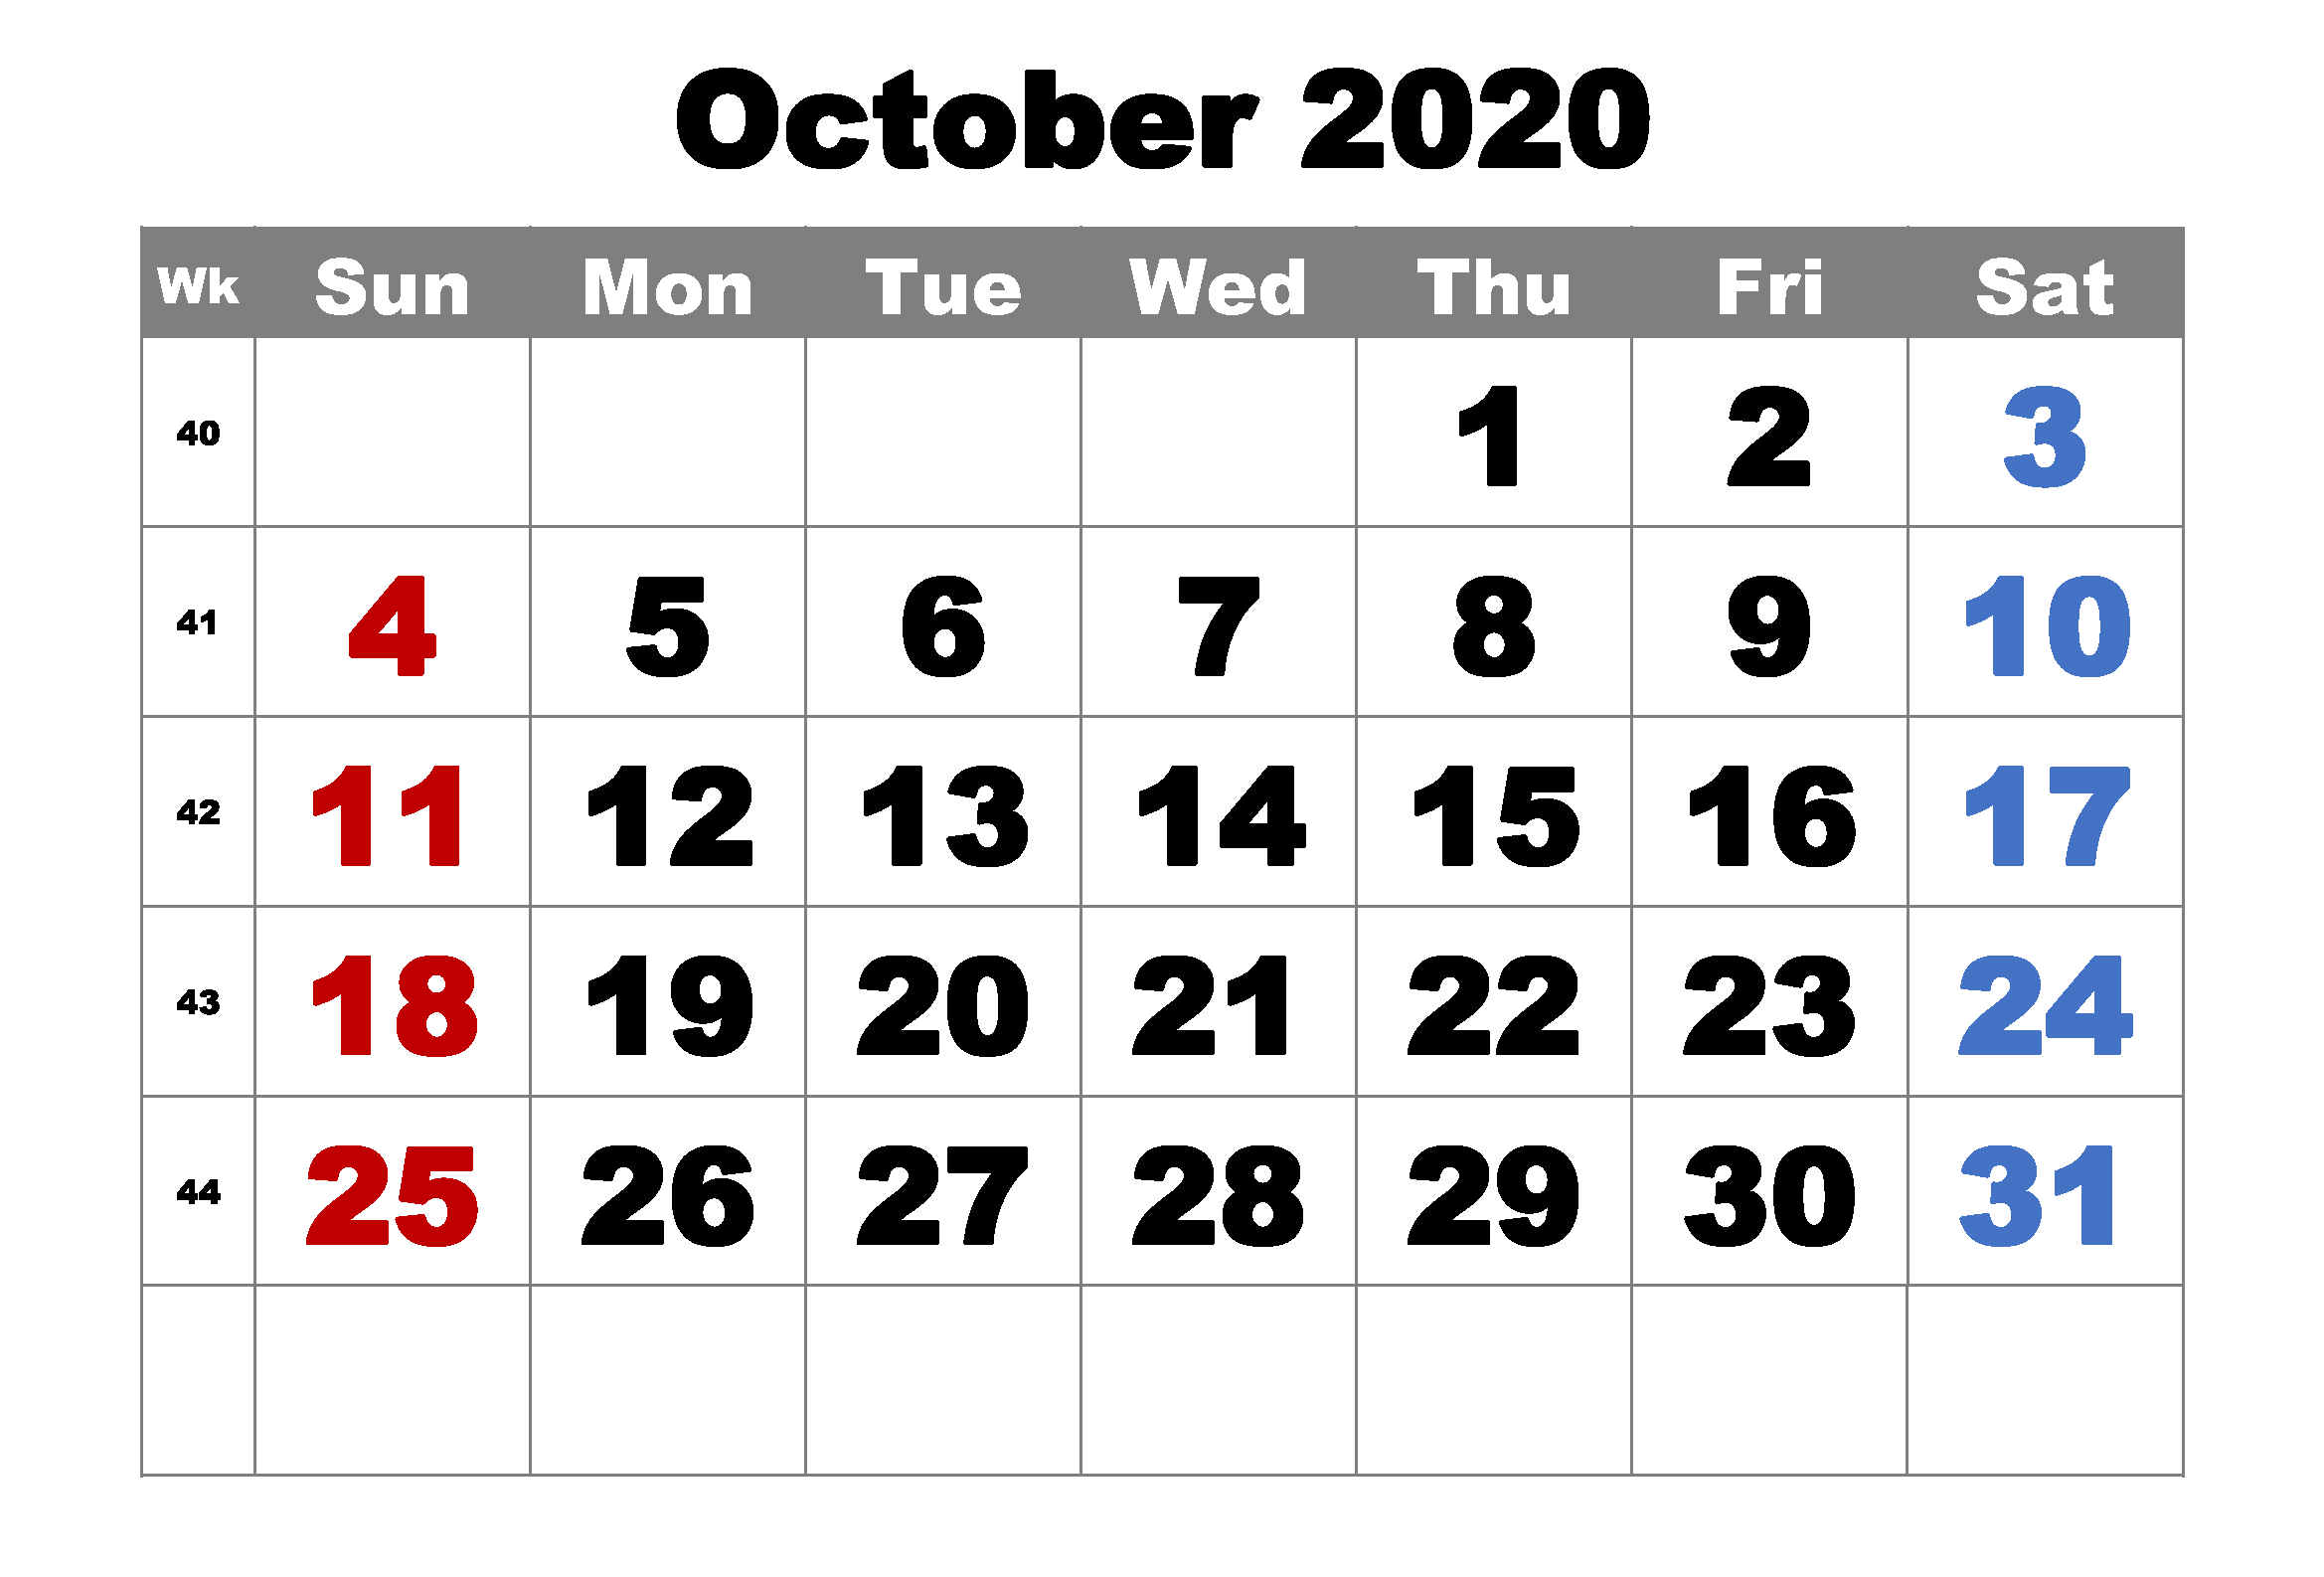 October 2020 Calendar Template Cute